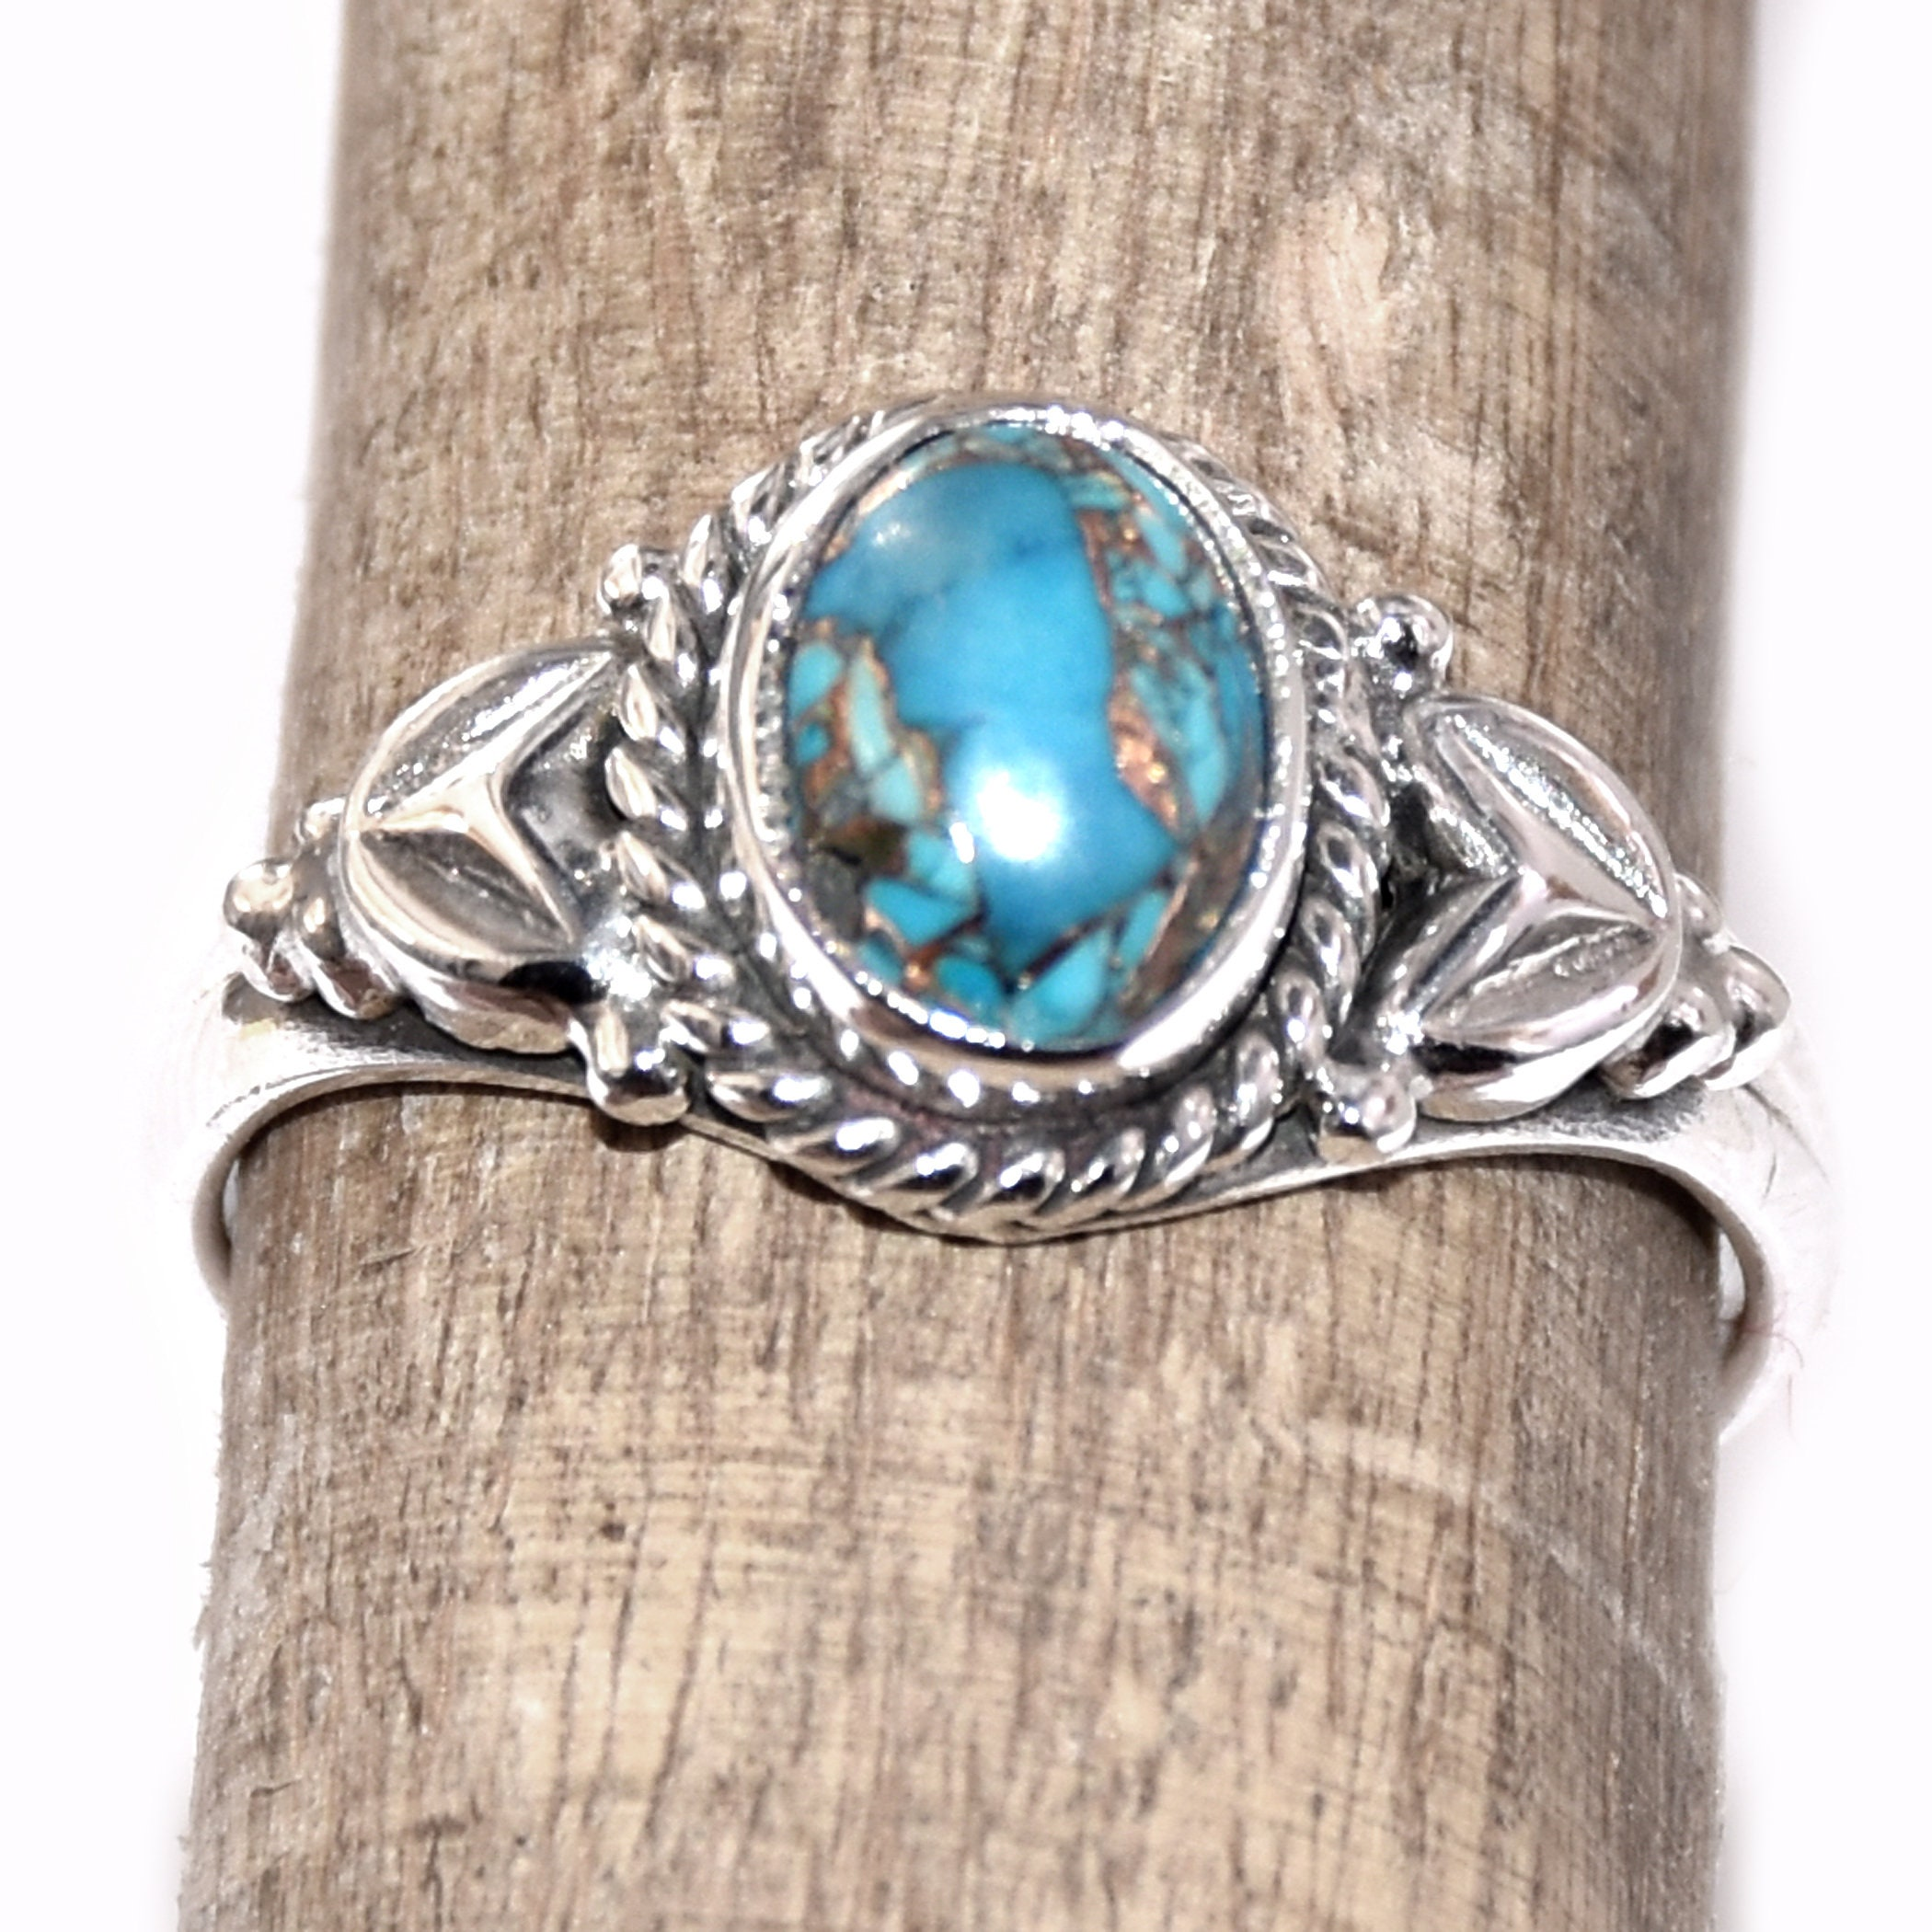 Turquoise Sterling Silver Ring Dainty Turquoise Jewelry Silver Brass Gemstone Ring Boho Ring Statement Ring Blue Copper Turquoise Ring